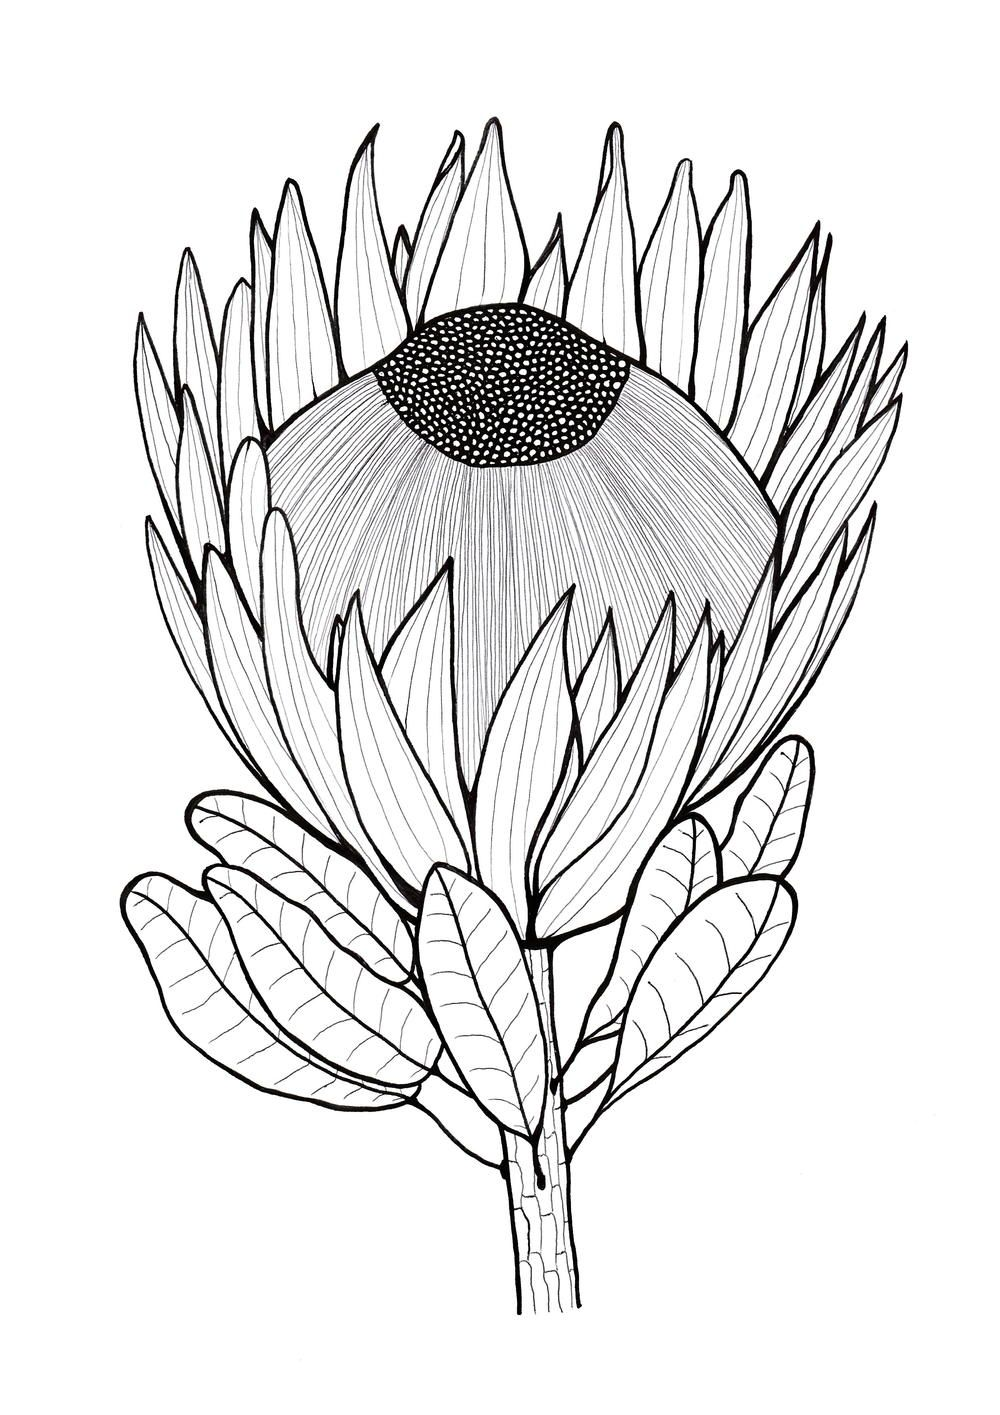 Glorious Protea Flowers to Color Protea art, Drawings, Art